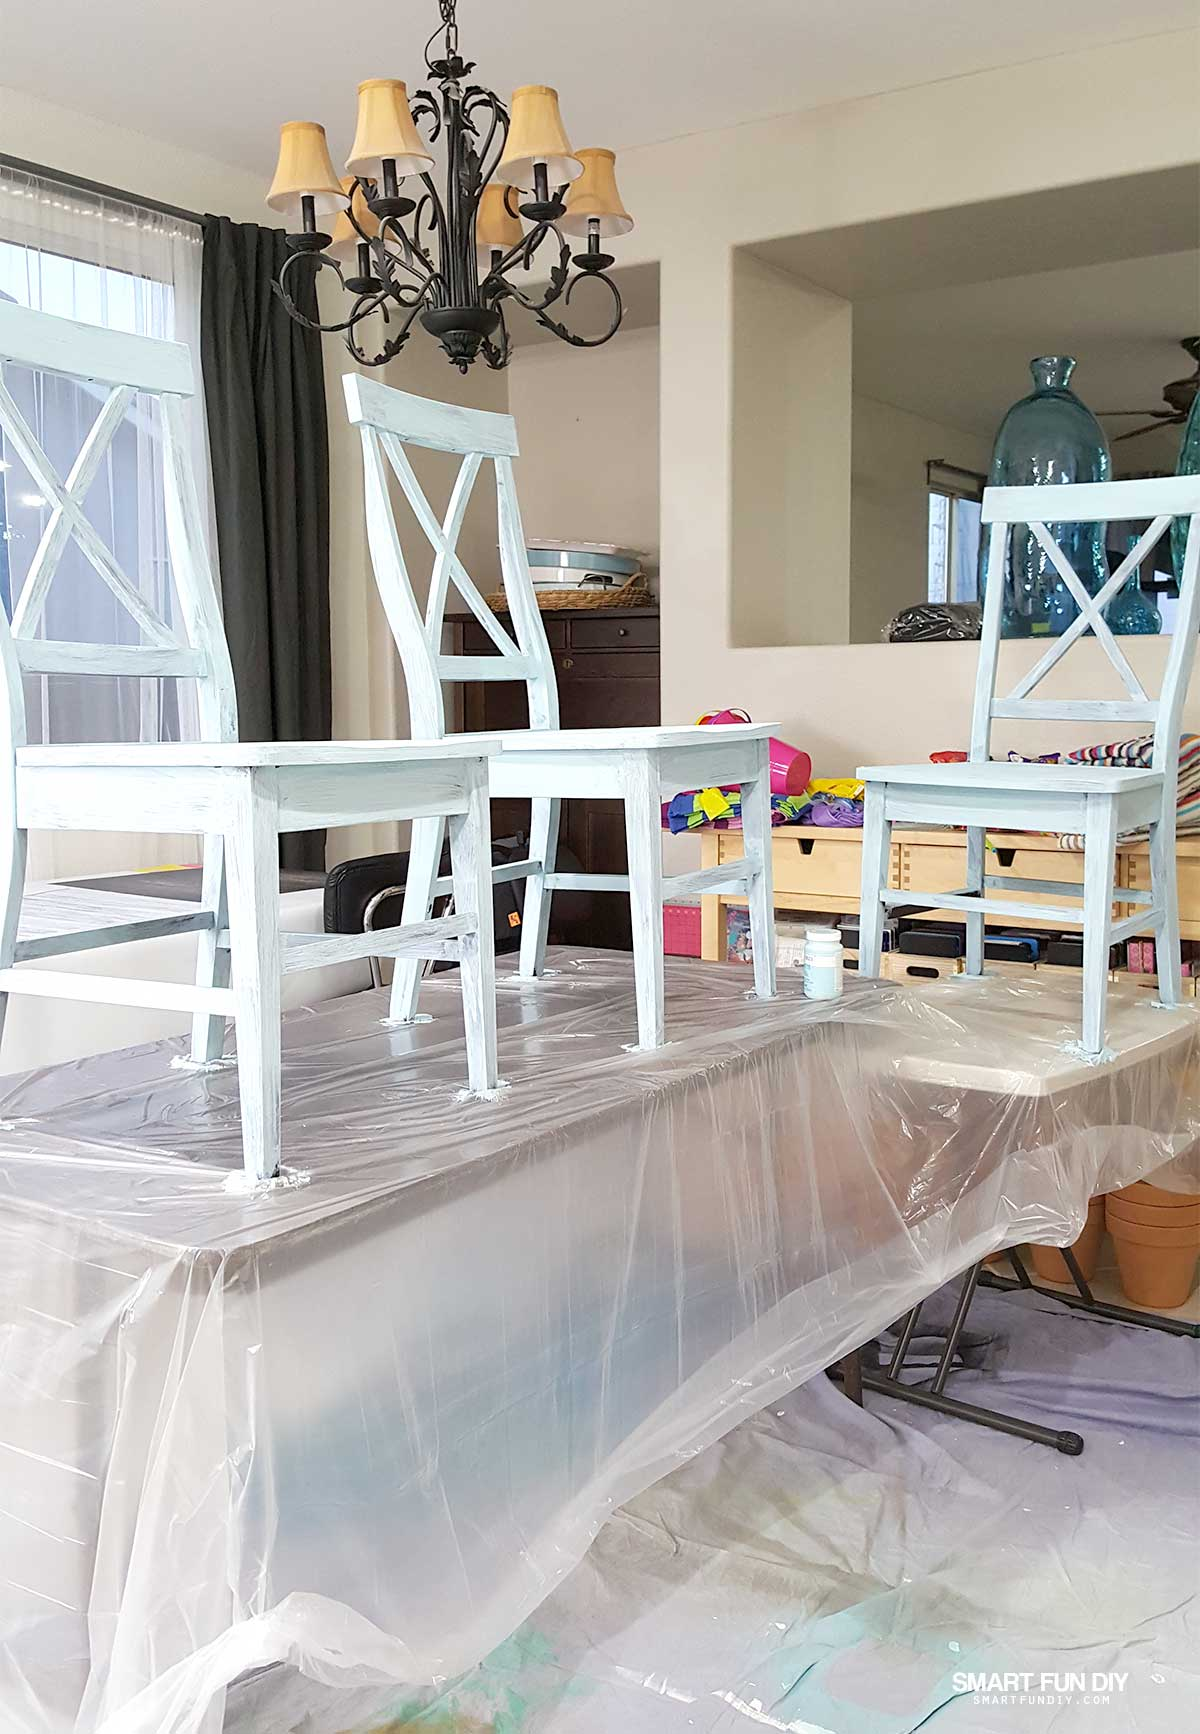 to paint inside spread a dropcloth over the floor and surrounding area and set the table on top we covered folding tables with plastic sheeting and then